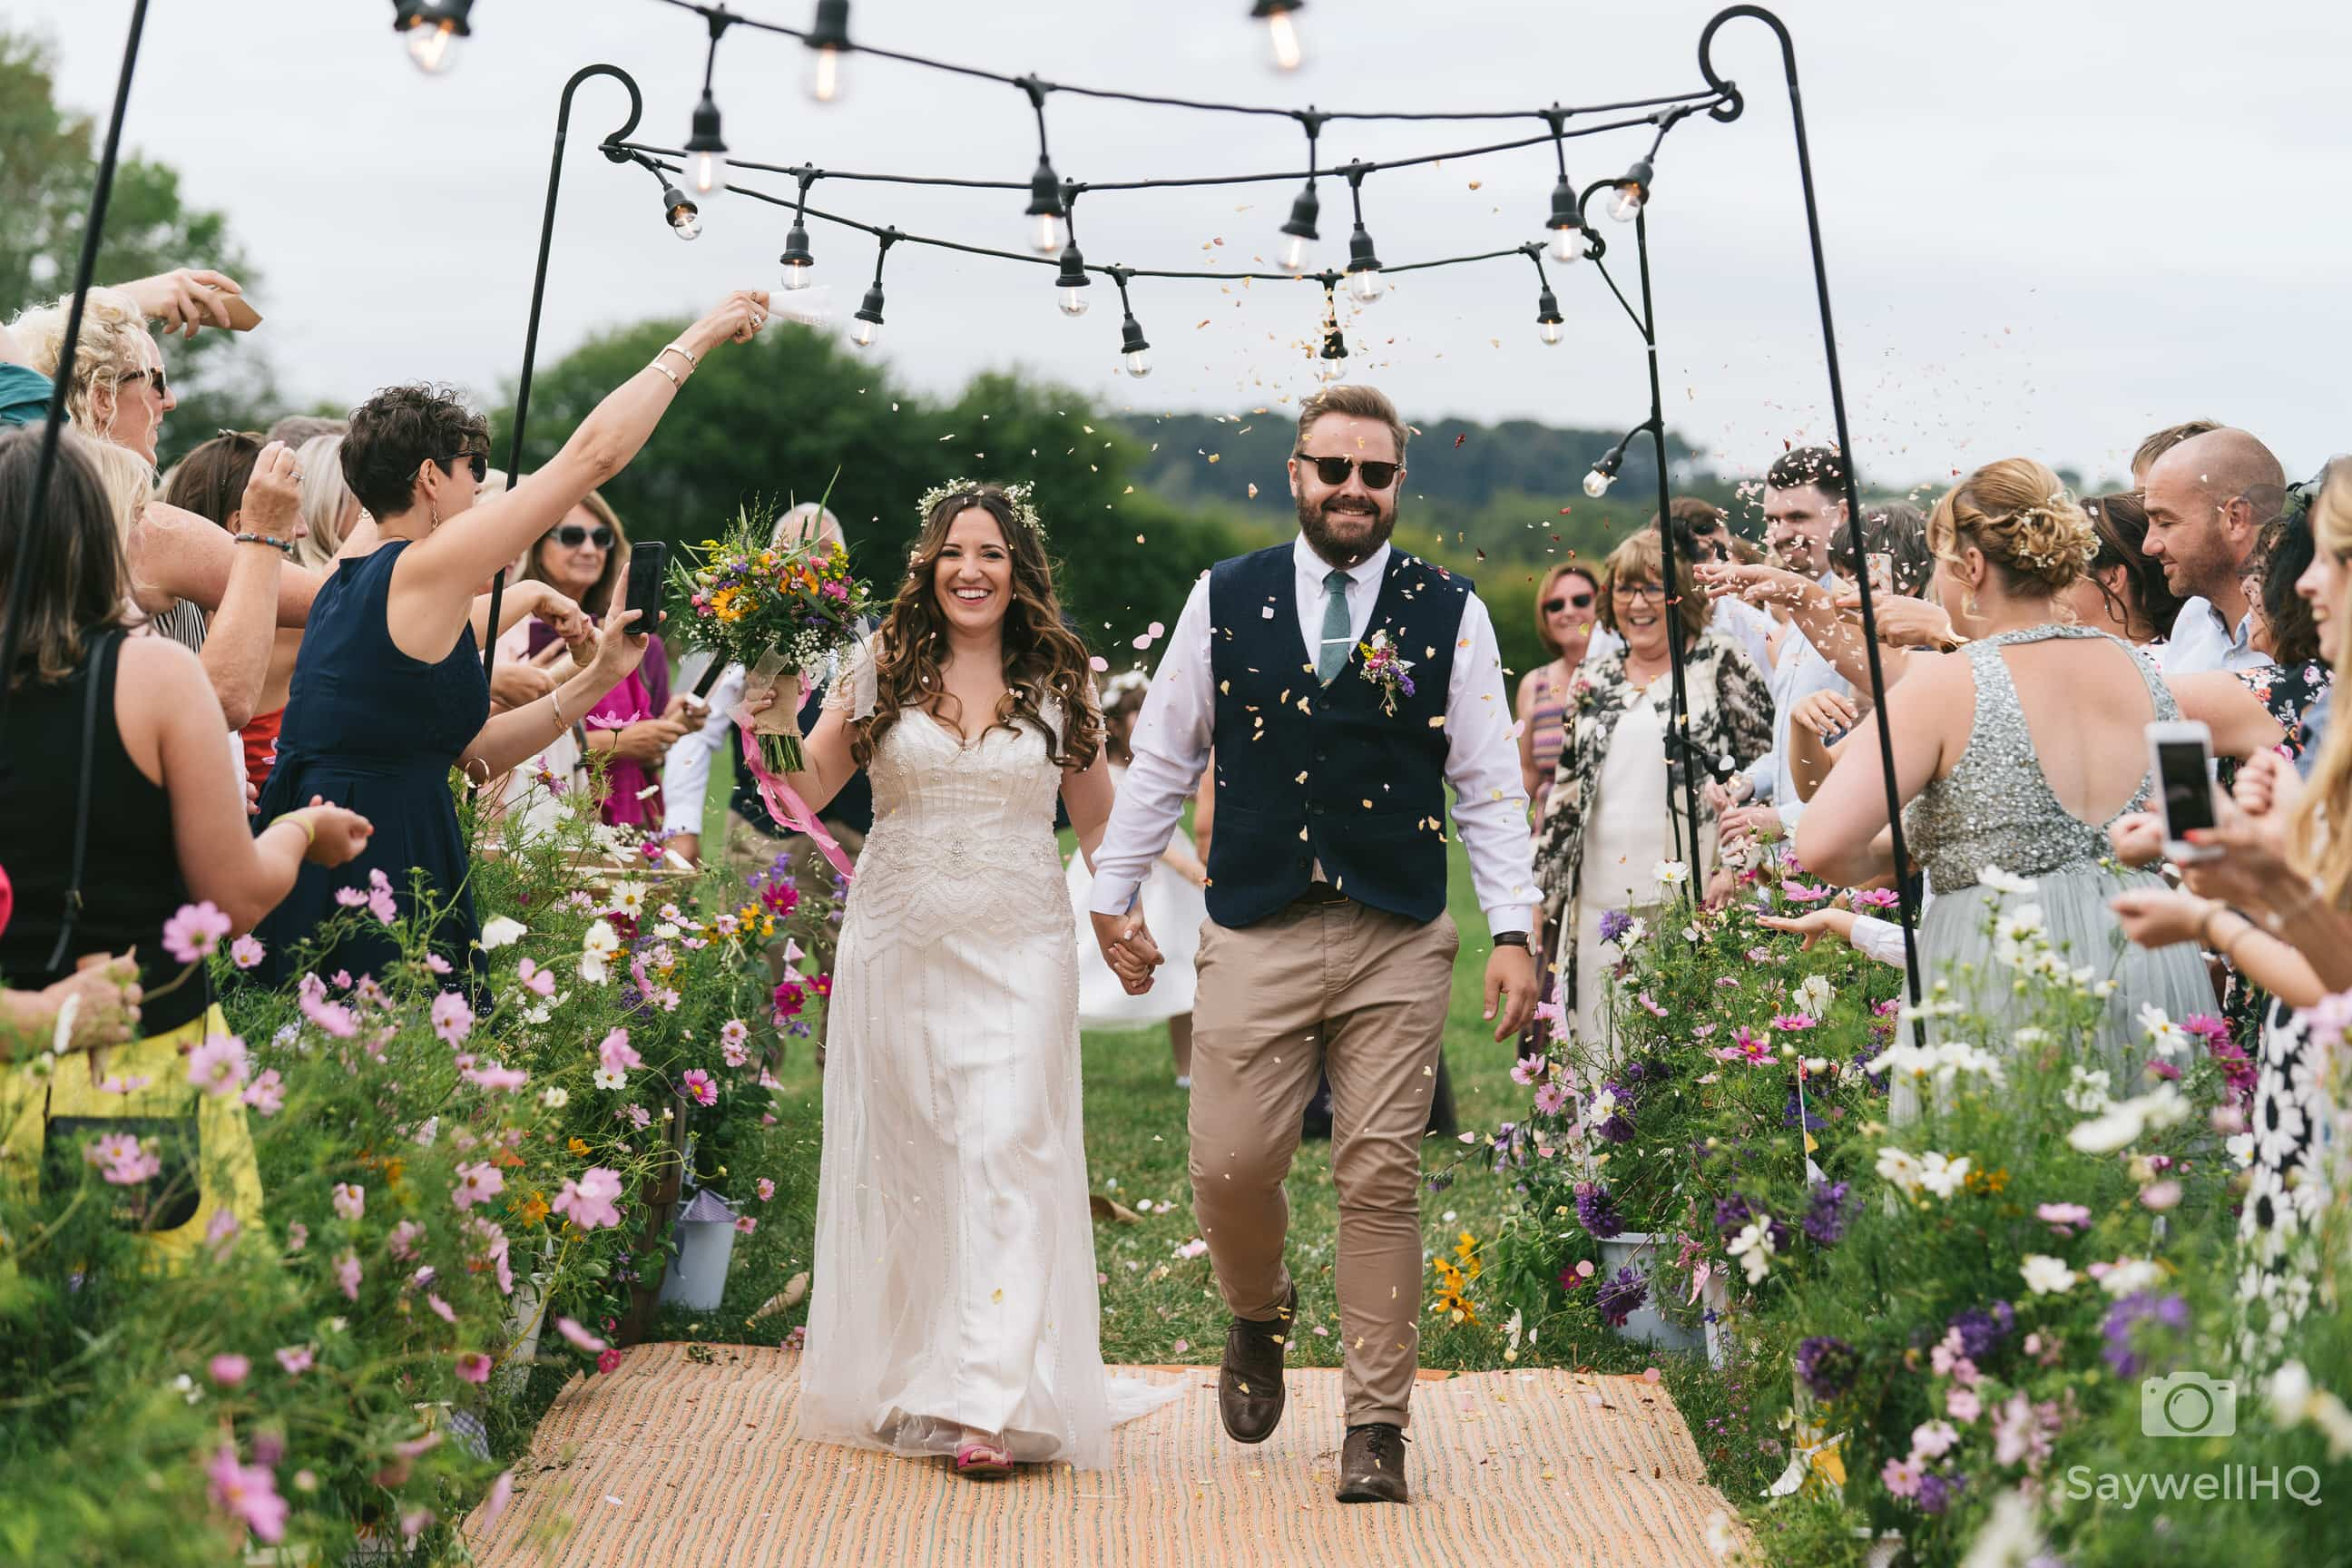 Wedding Photography at Mapperley Farm - bride and groom walking through confetti being thrown at them by the wedding guests